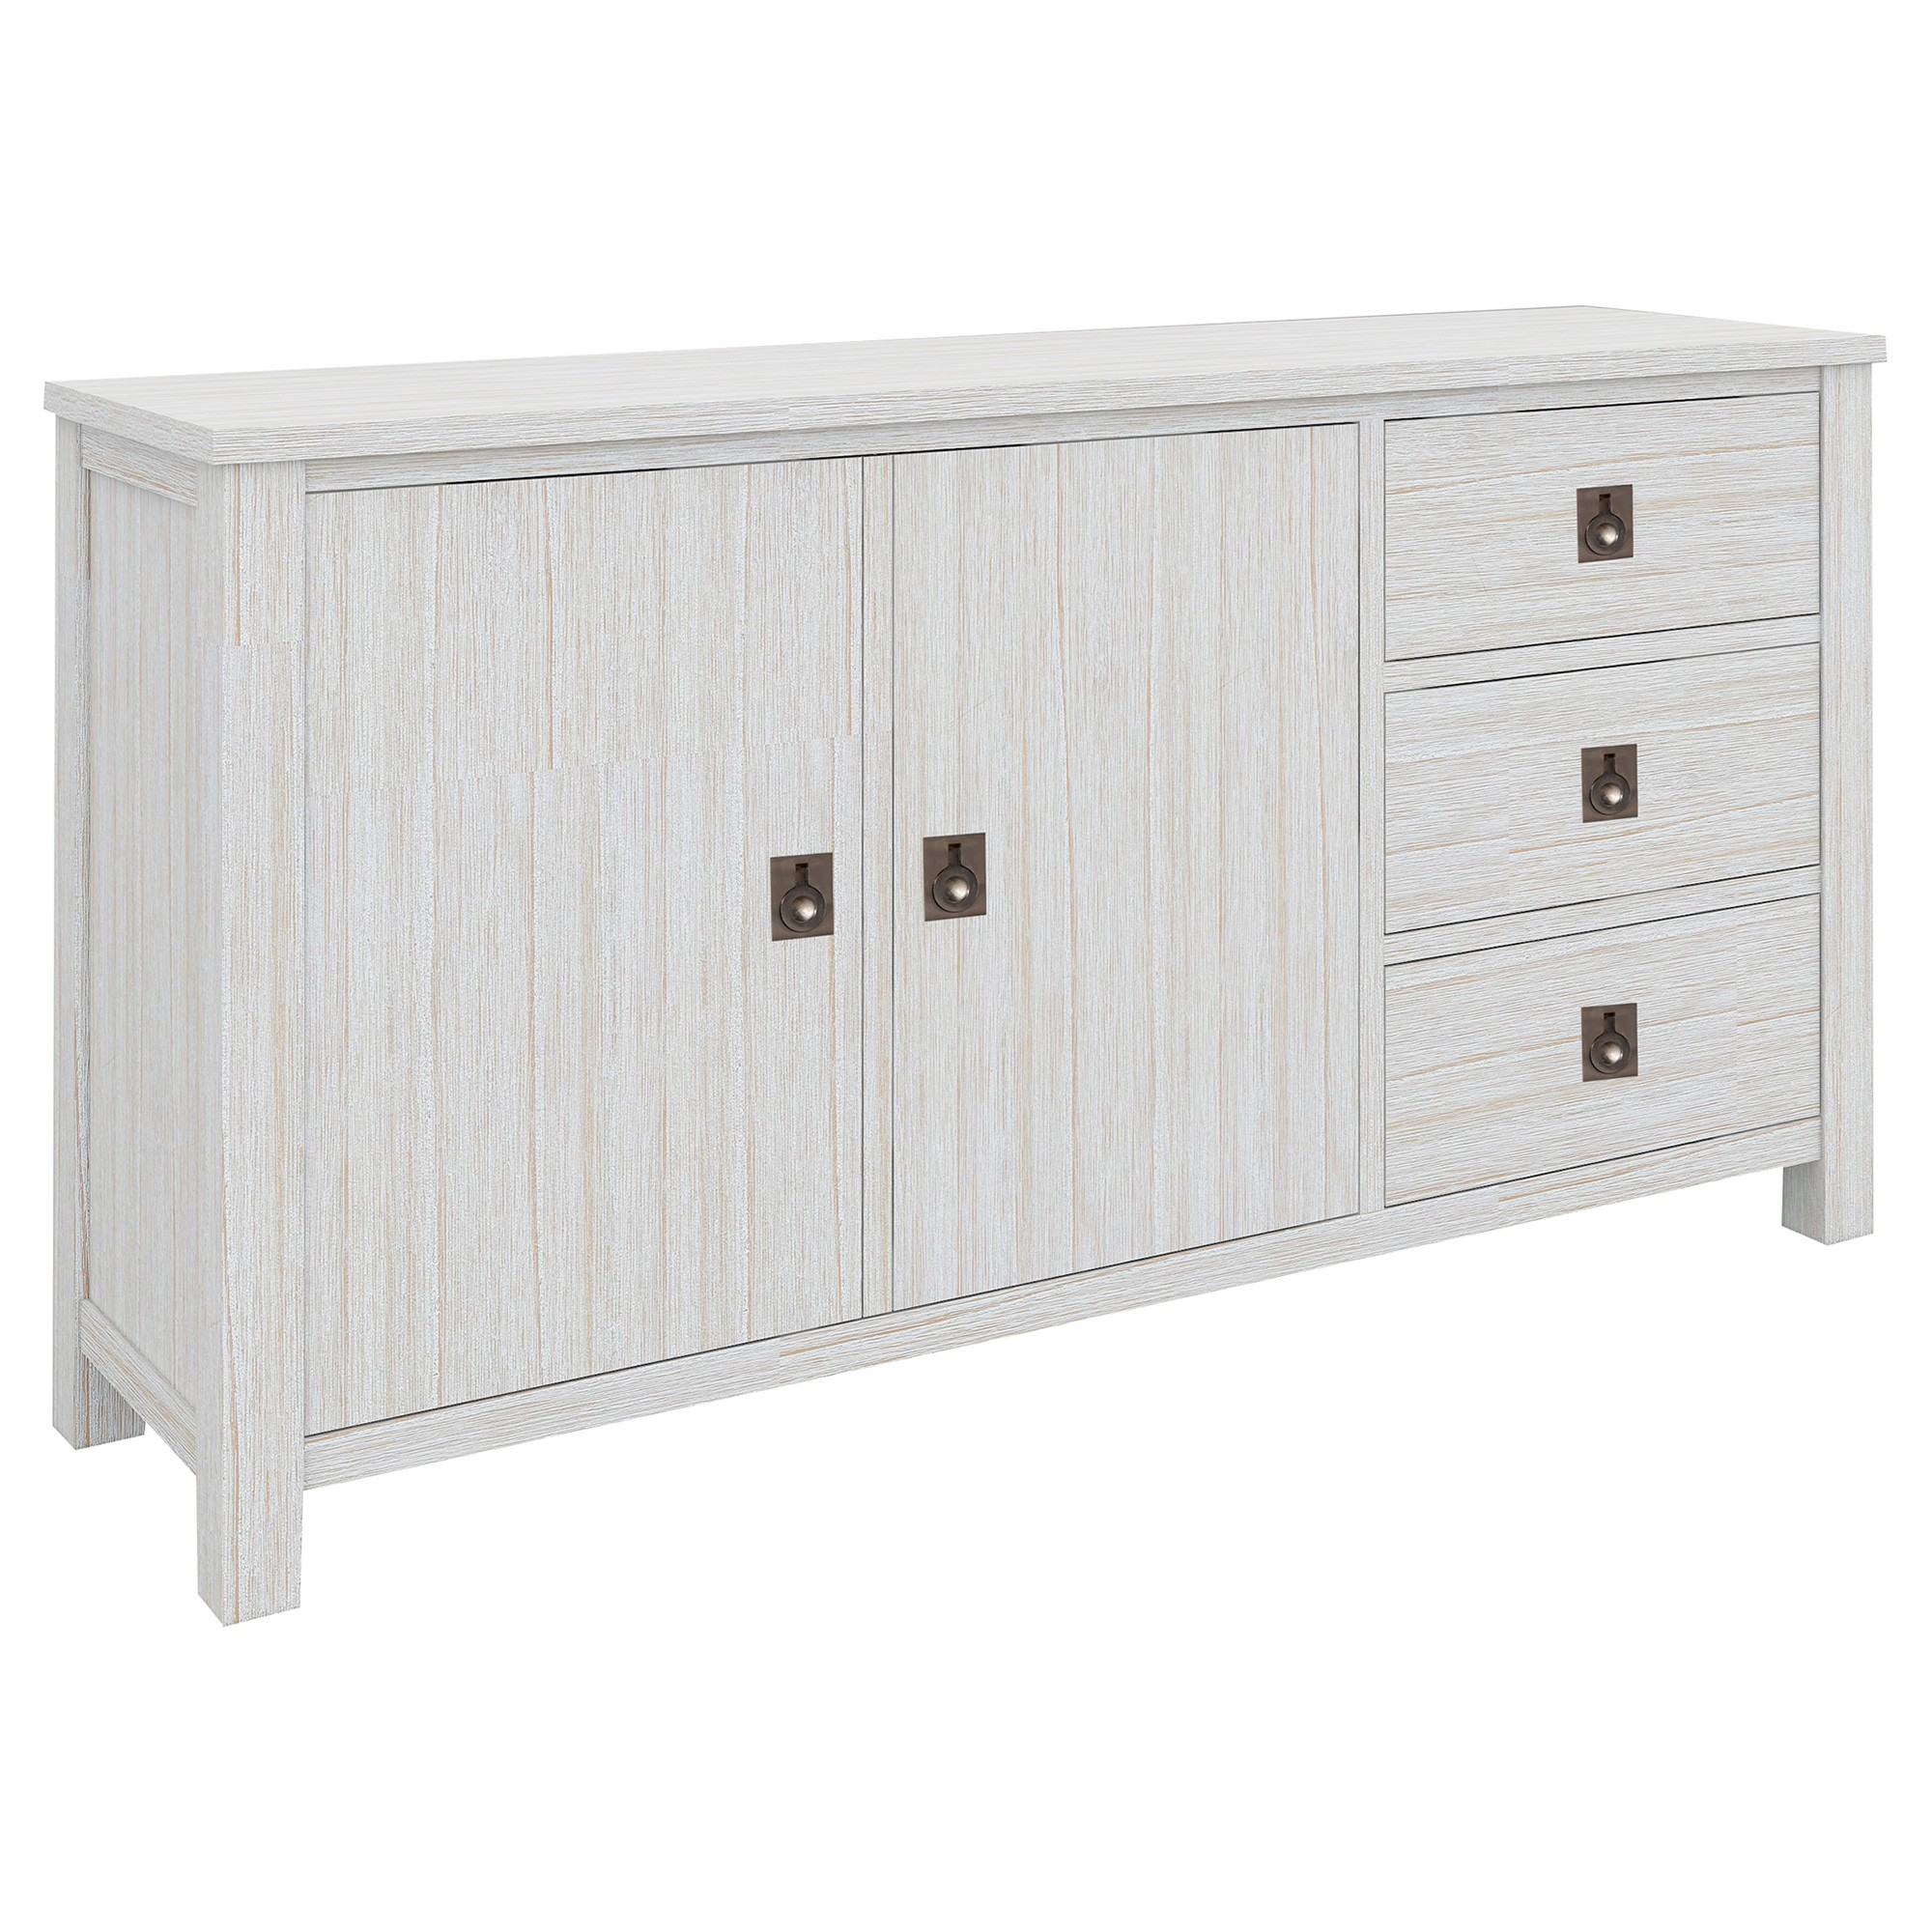 Cardiff Mountain Ash Timber 2 Door 3 Drawer Buffet Table, 155cm